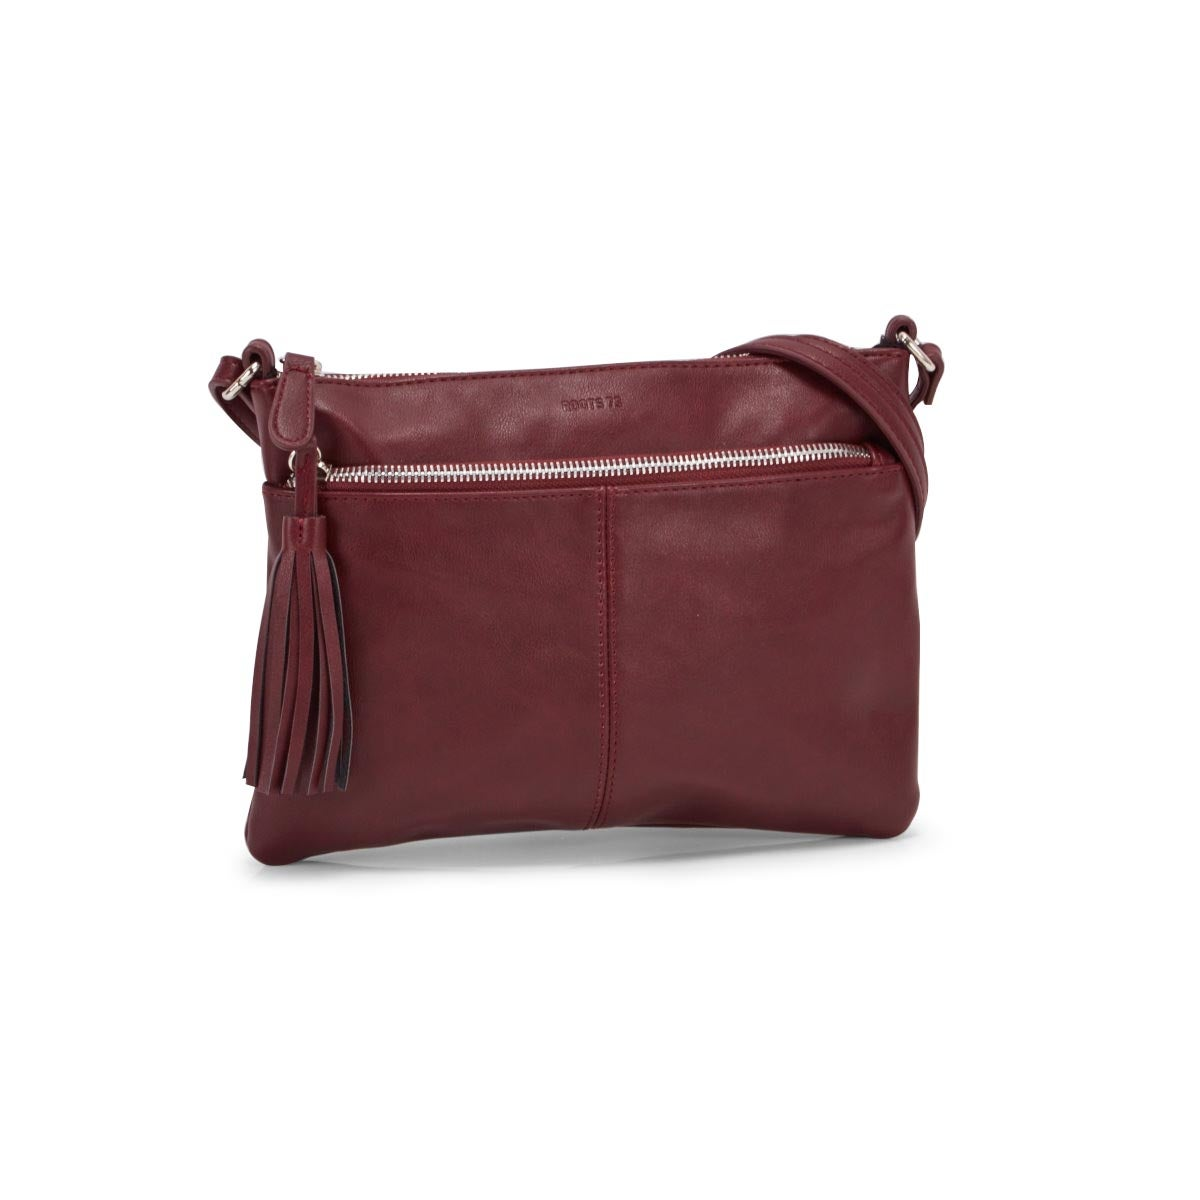 Lds Roots73 burgundy tassel crossbody